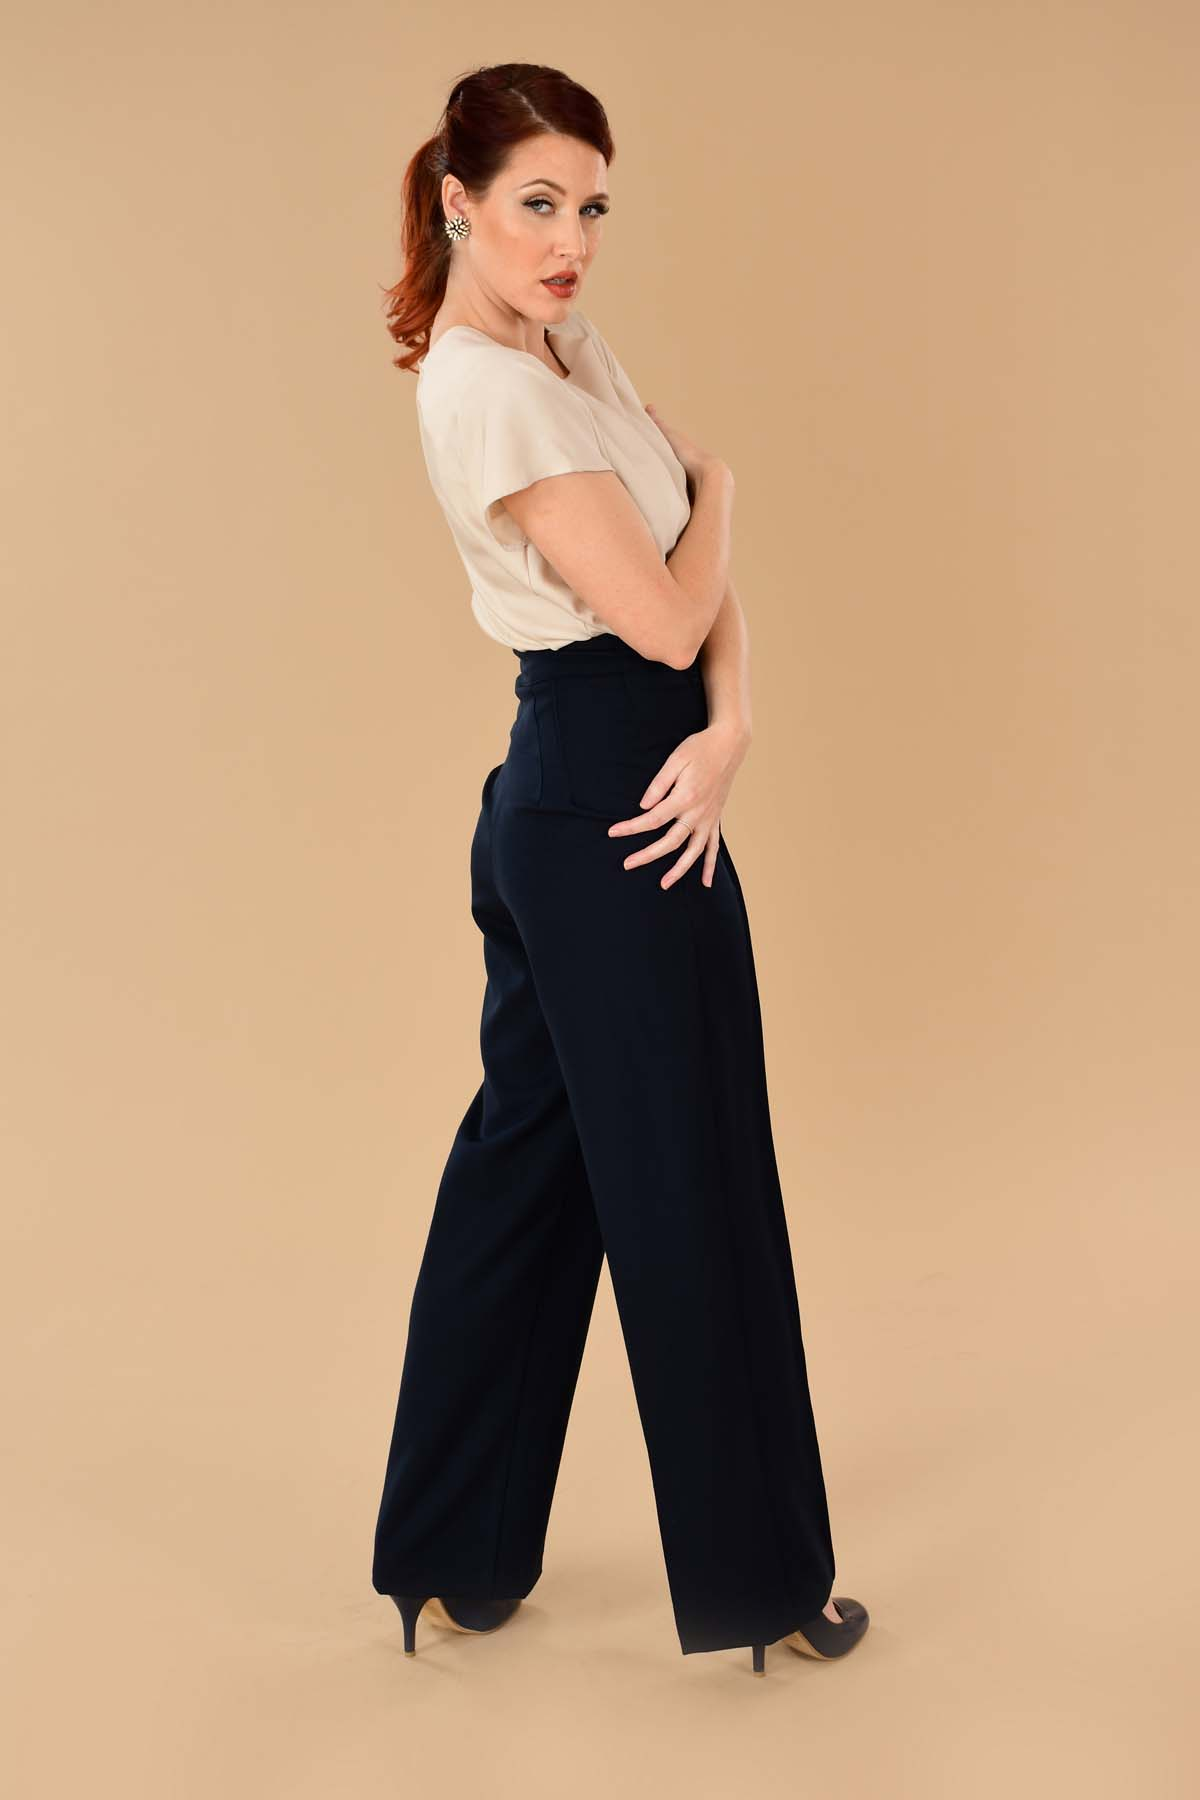 Chic 1940s style navy high waisted ladies wide leg trousers